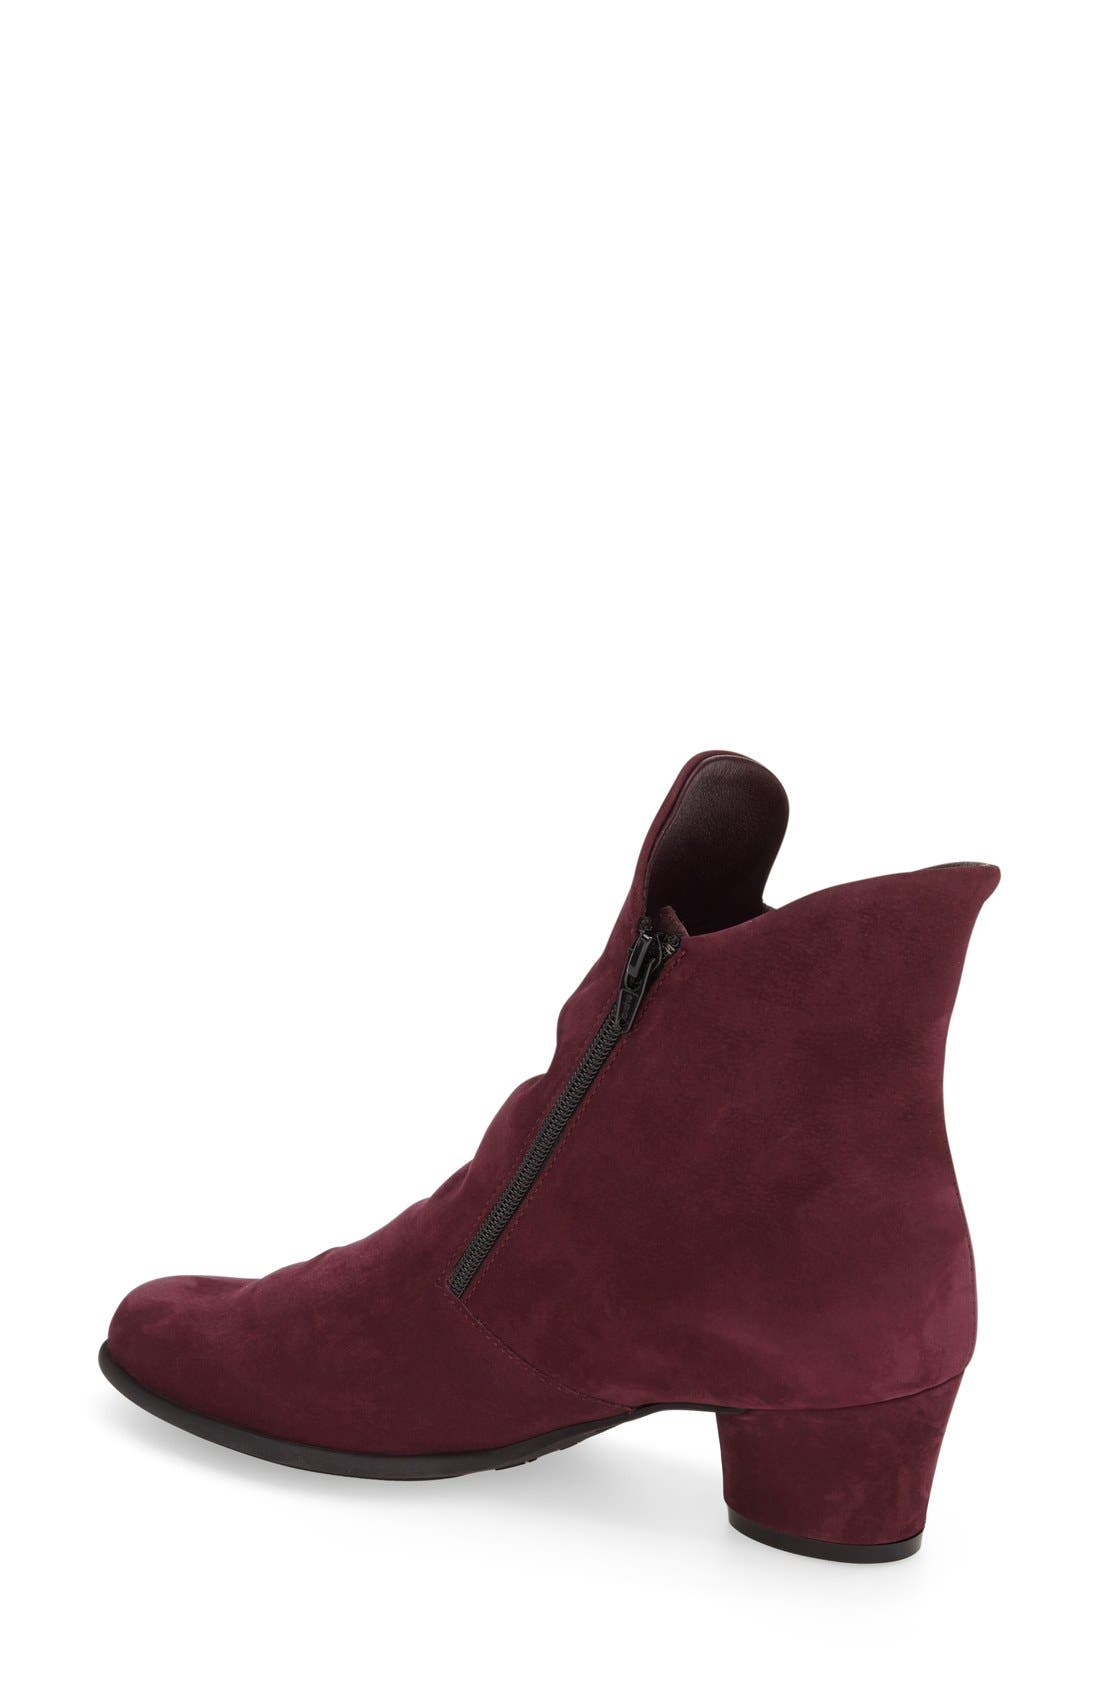 'Musaca' Boot,                             Alternate thumbnail 2, color,                             Berry Nubuck Leather